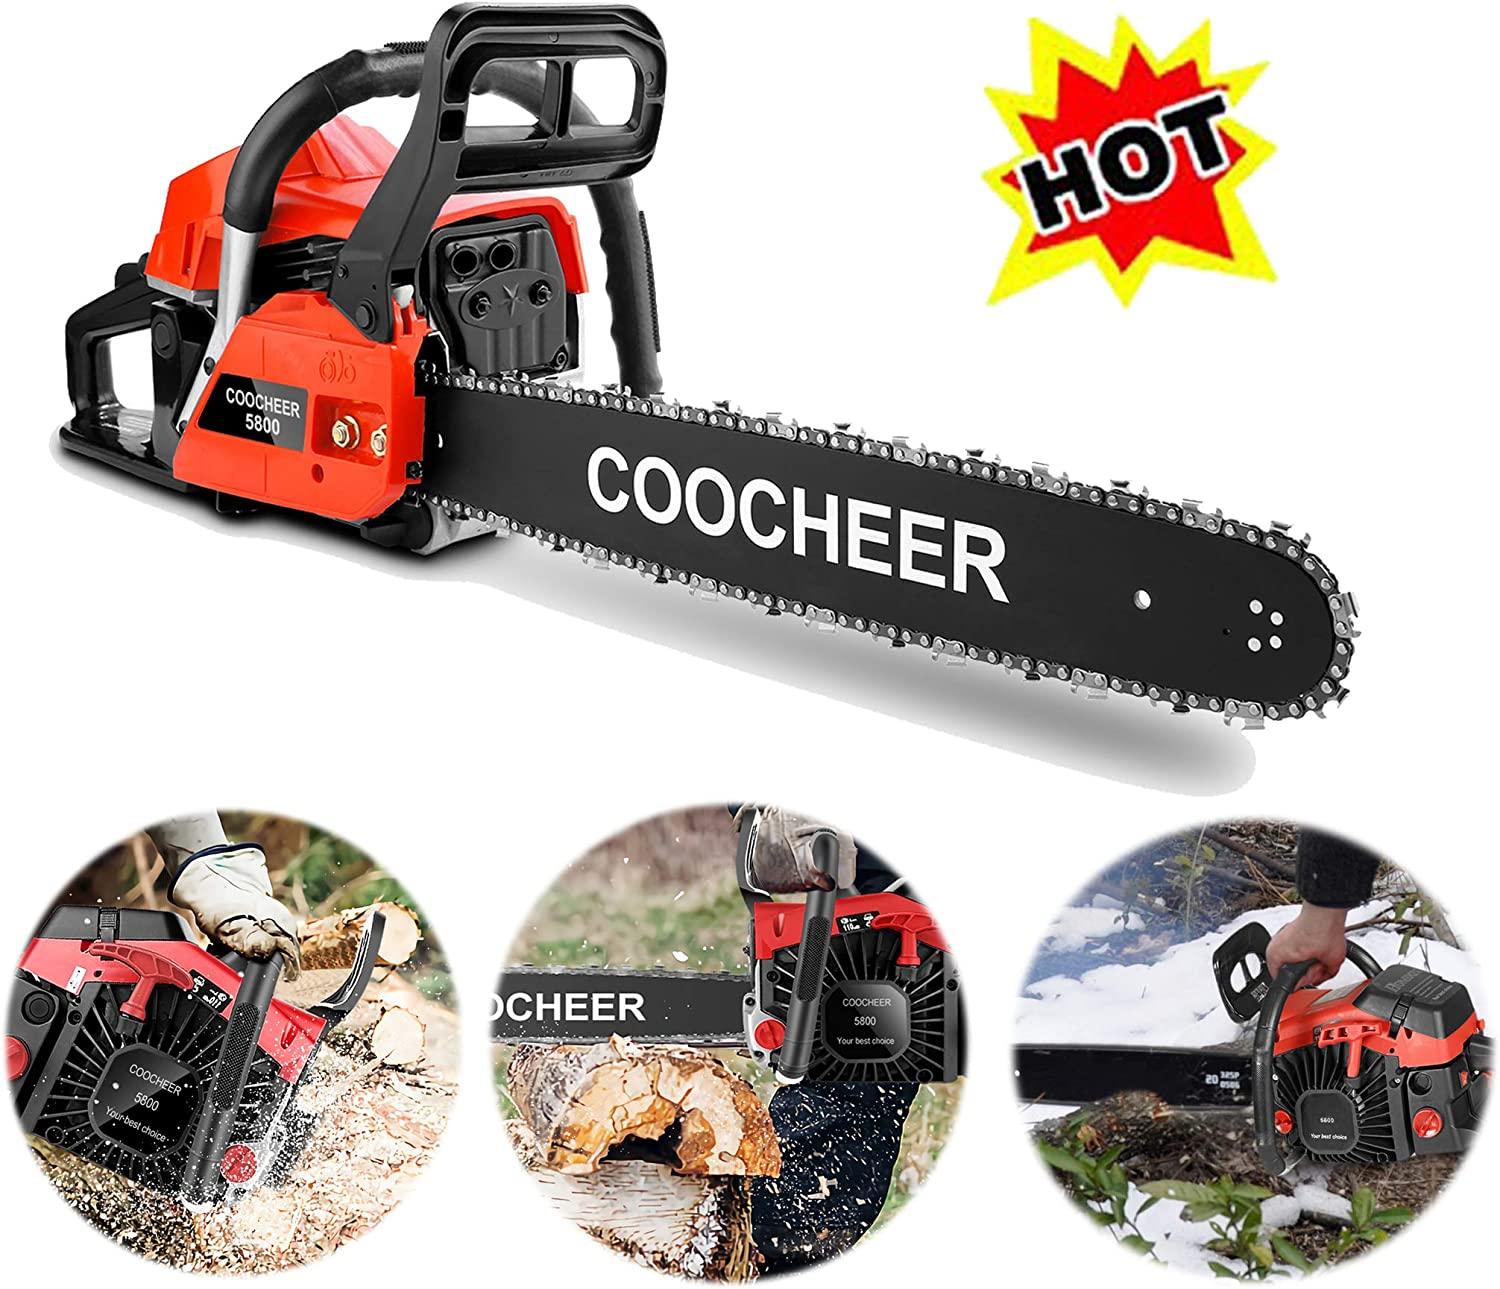 OppsDecor XP2300 58cc Gas Powered Chainsaw, 20 Inch 2 Stroke Handed Petrol Gasoline Chain Saw for Cutting Wood with Tool Kit,Garden Farm Home Use US Stock Orange